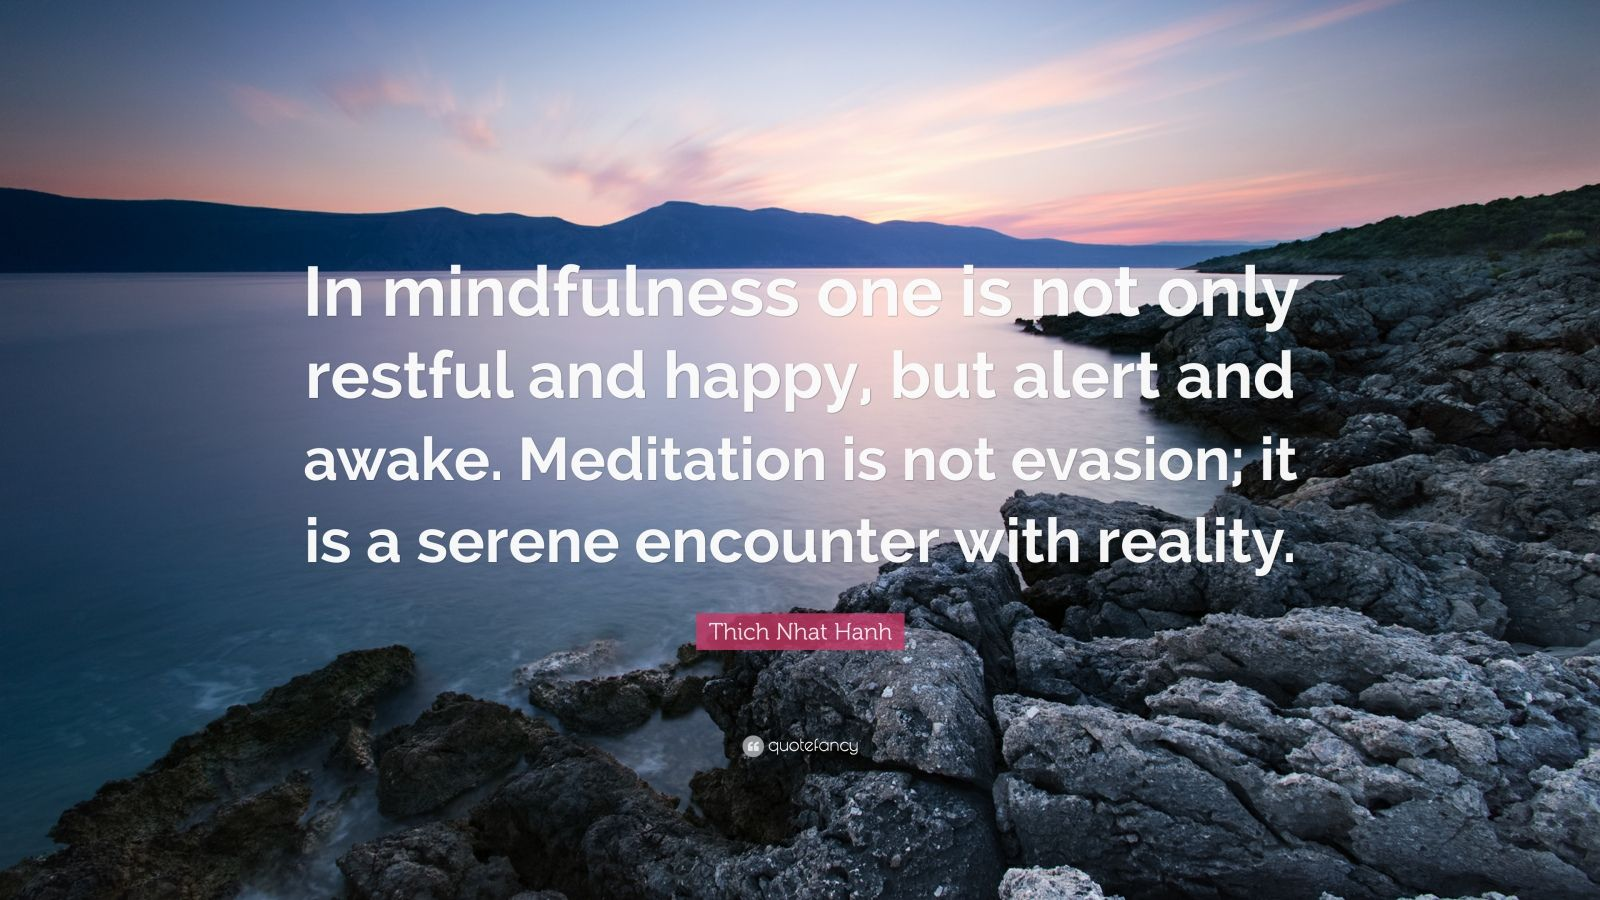 """Thich Nhat Hanh Quote: """"In mindfulness one is not only restful and happy, but alert and awake. Meditation is not evasion; it is a serene encounter with reality."""""""